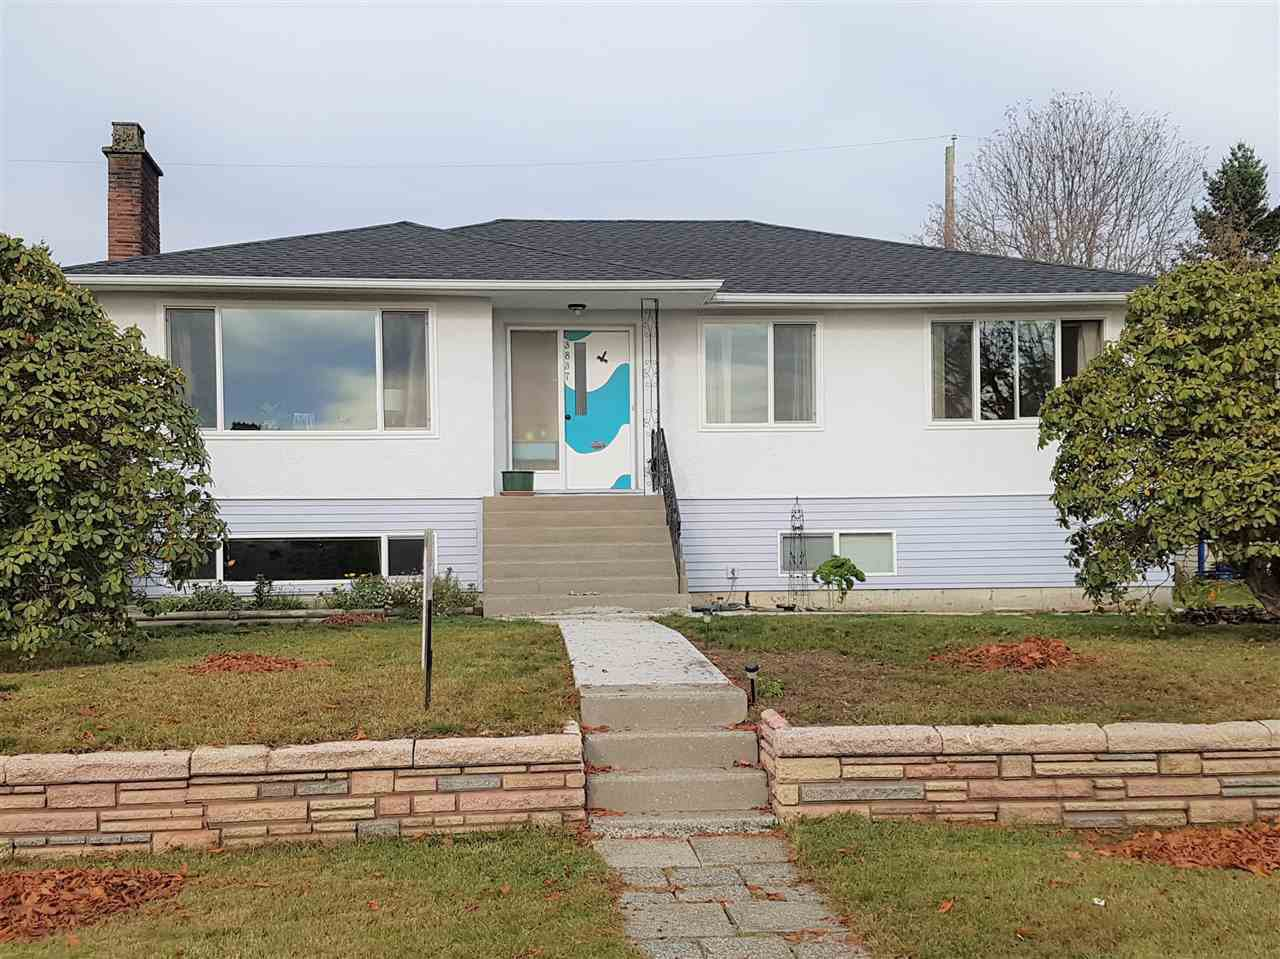 Photo 1: Photos: 3837 HURST Street in Burnaby: Suncrest House for sale (Burnaby South)  : MLS®# R2419284